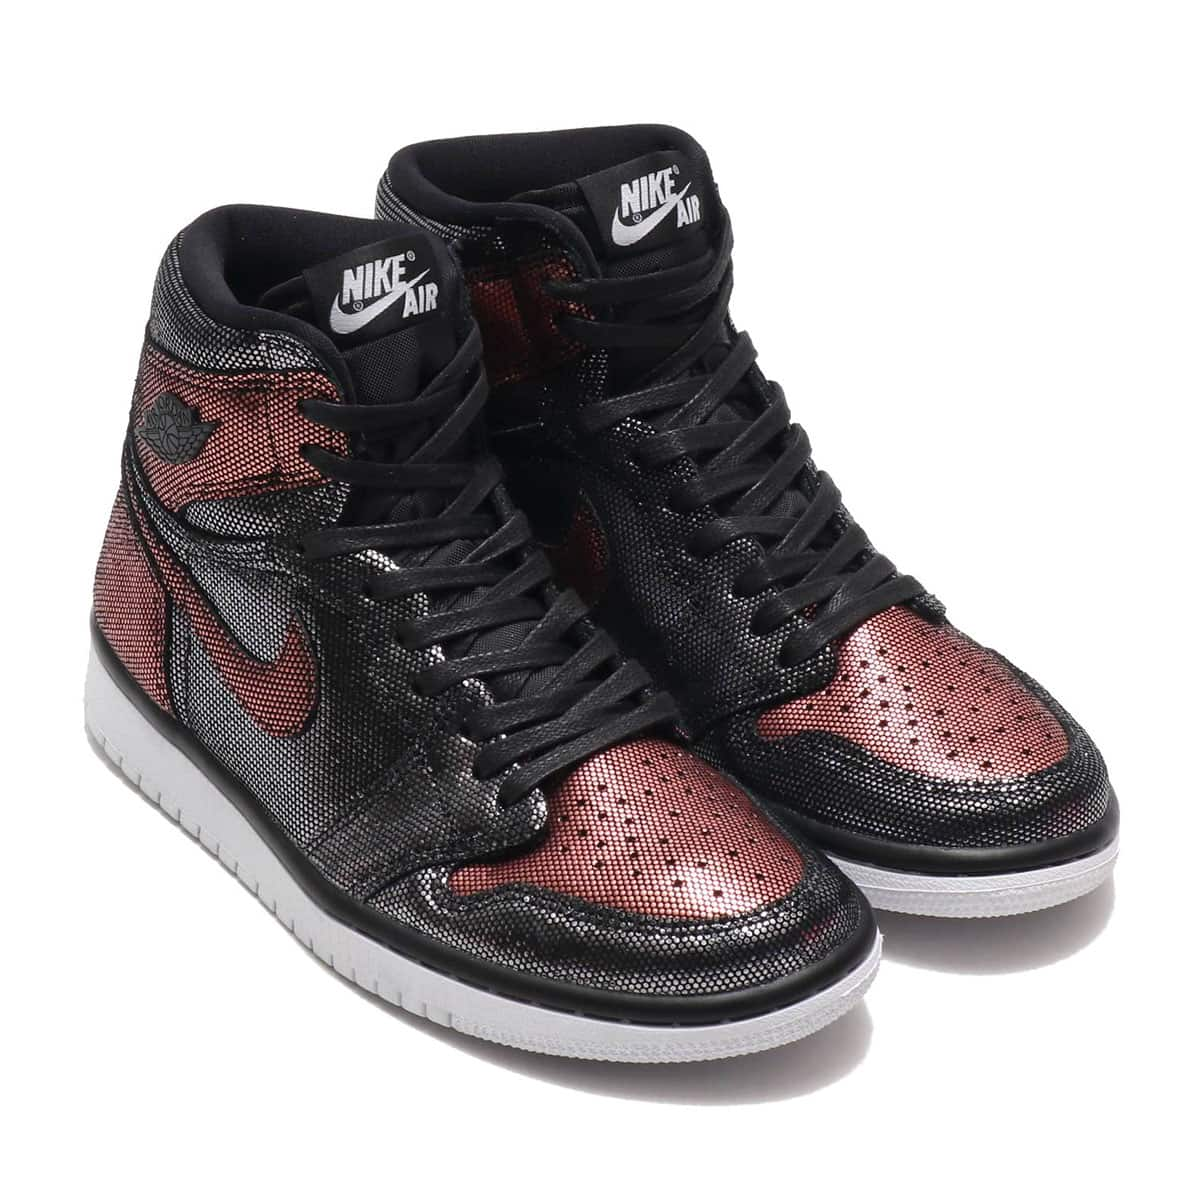 NIKE W AIR JORDAN 1 HI OG FEARLESS BLACK/BLACK-MTLC ROSE GOLD-WHITE 19HO-S_photo_large